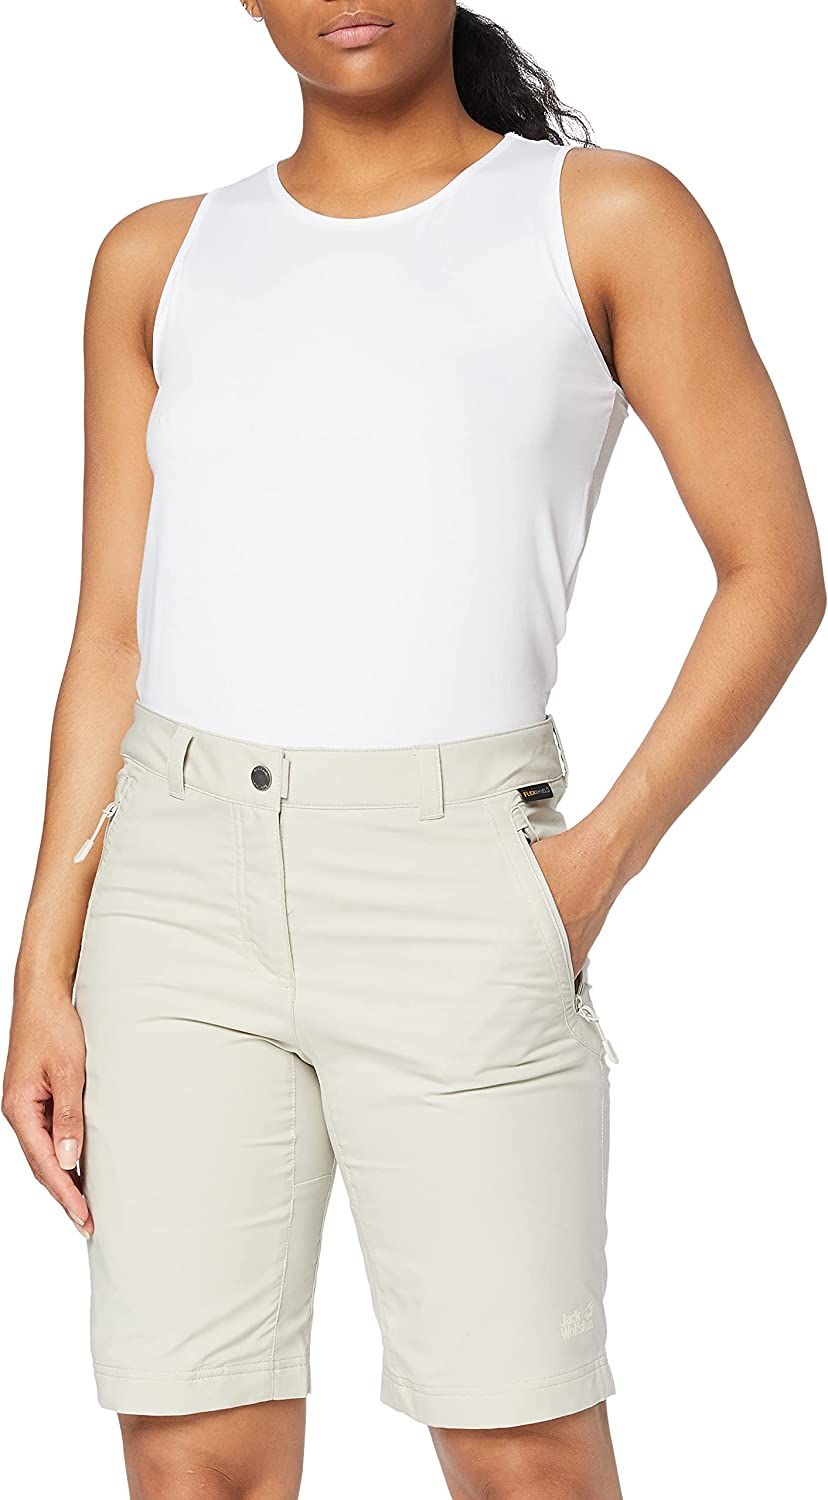 Al sold out. Jack Wolfskin Women's Track Activate Denver Mall Shorts